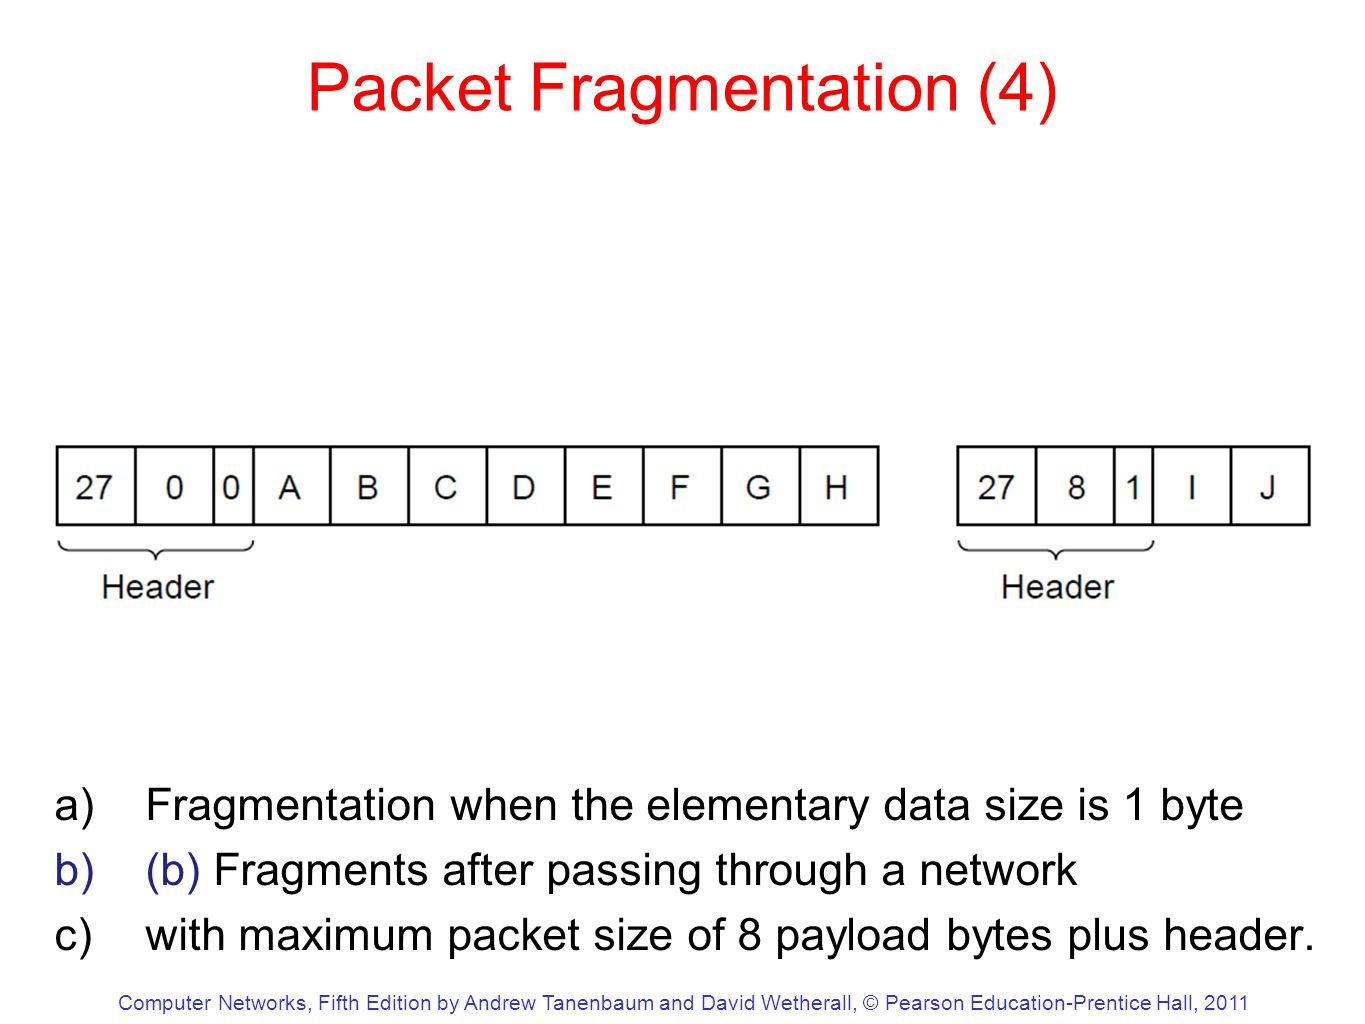 Computer Networks, Fifth Edition by Andrew Tanenbaum and David Wetherall, © Pearson Education-Prentice Hall, 2011 Packet Fragmentation (4) a)Fragmentation when the elementary data size is 1 byte b)(b) Fragments after passing through a network c)with maximum packet size of 8 payload bytes plus header.